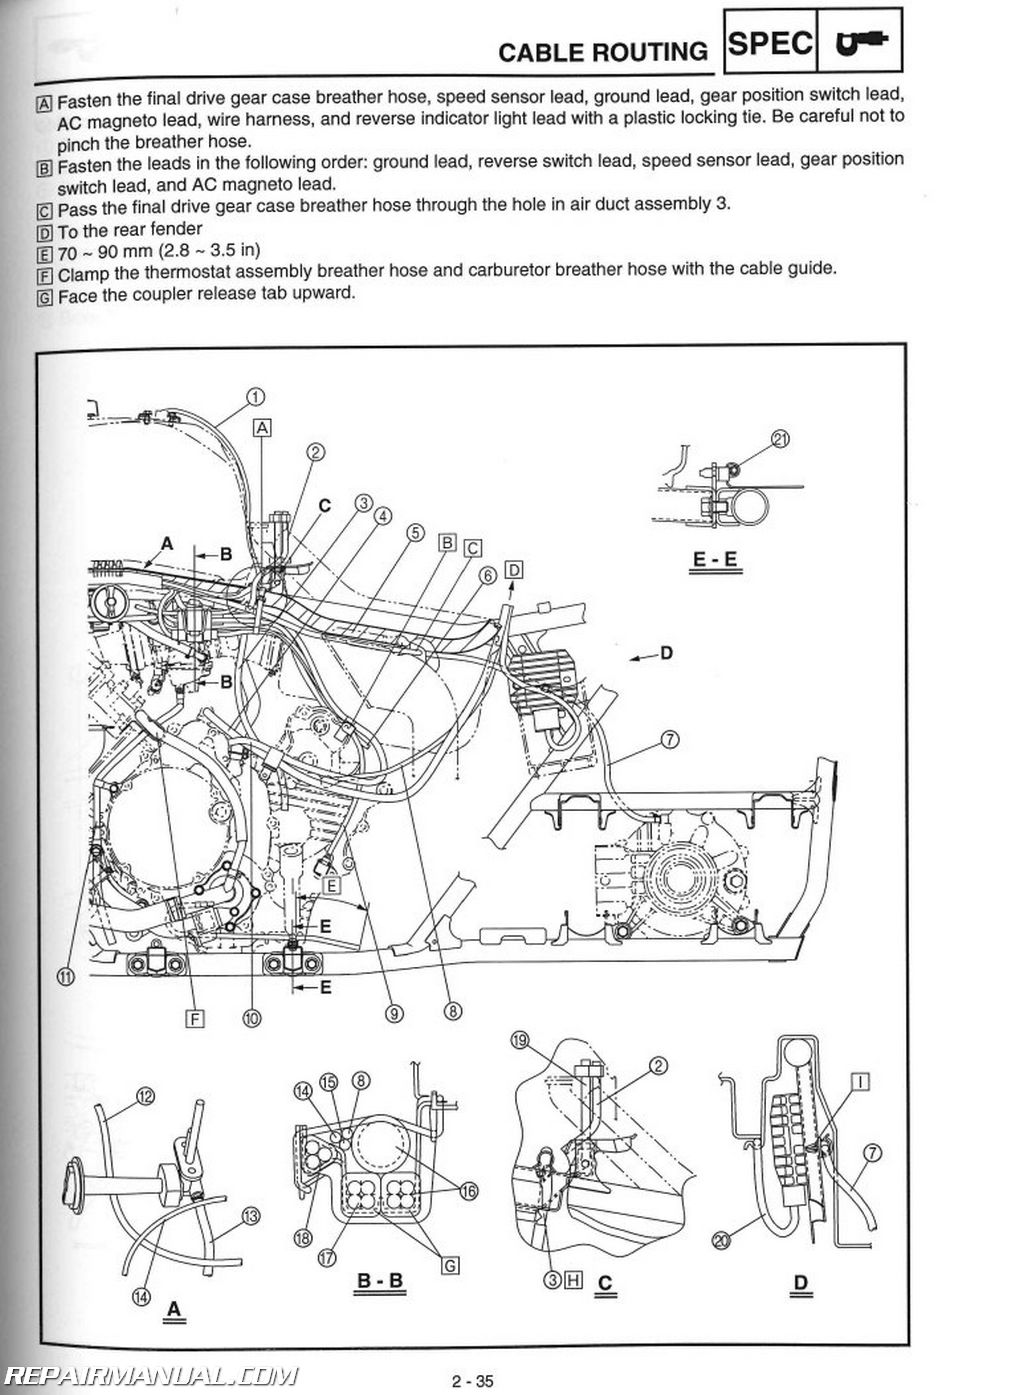 Jump Yamaha Grizzly 600 Service Manual Kodiak 400 4x4 Wiring Diagram Yfm660fa 660 Atv 2003 2008 Rh Repairmanual Com 1999 Schematic